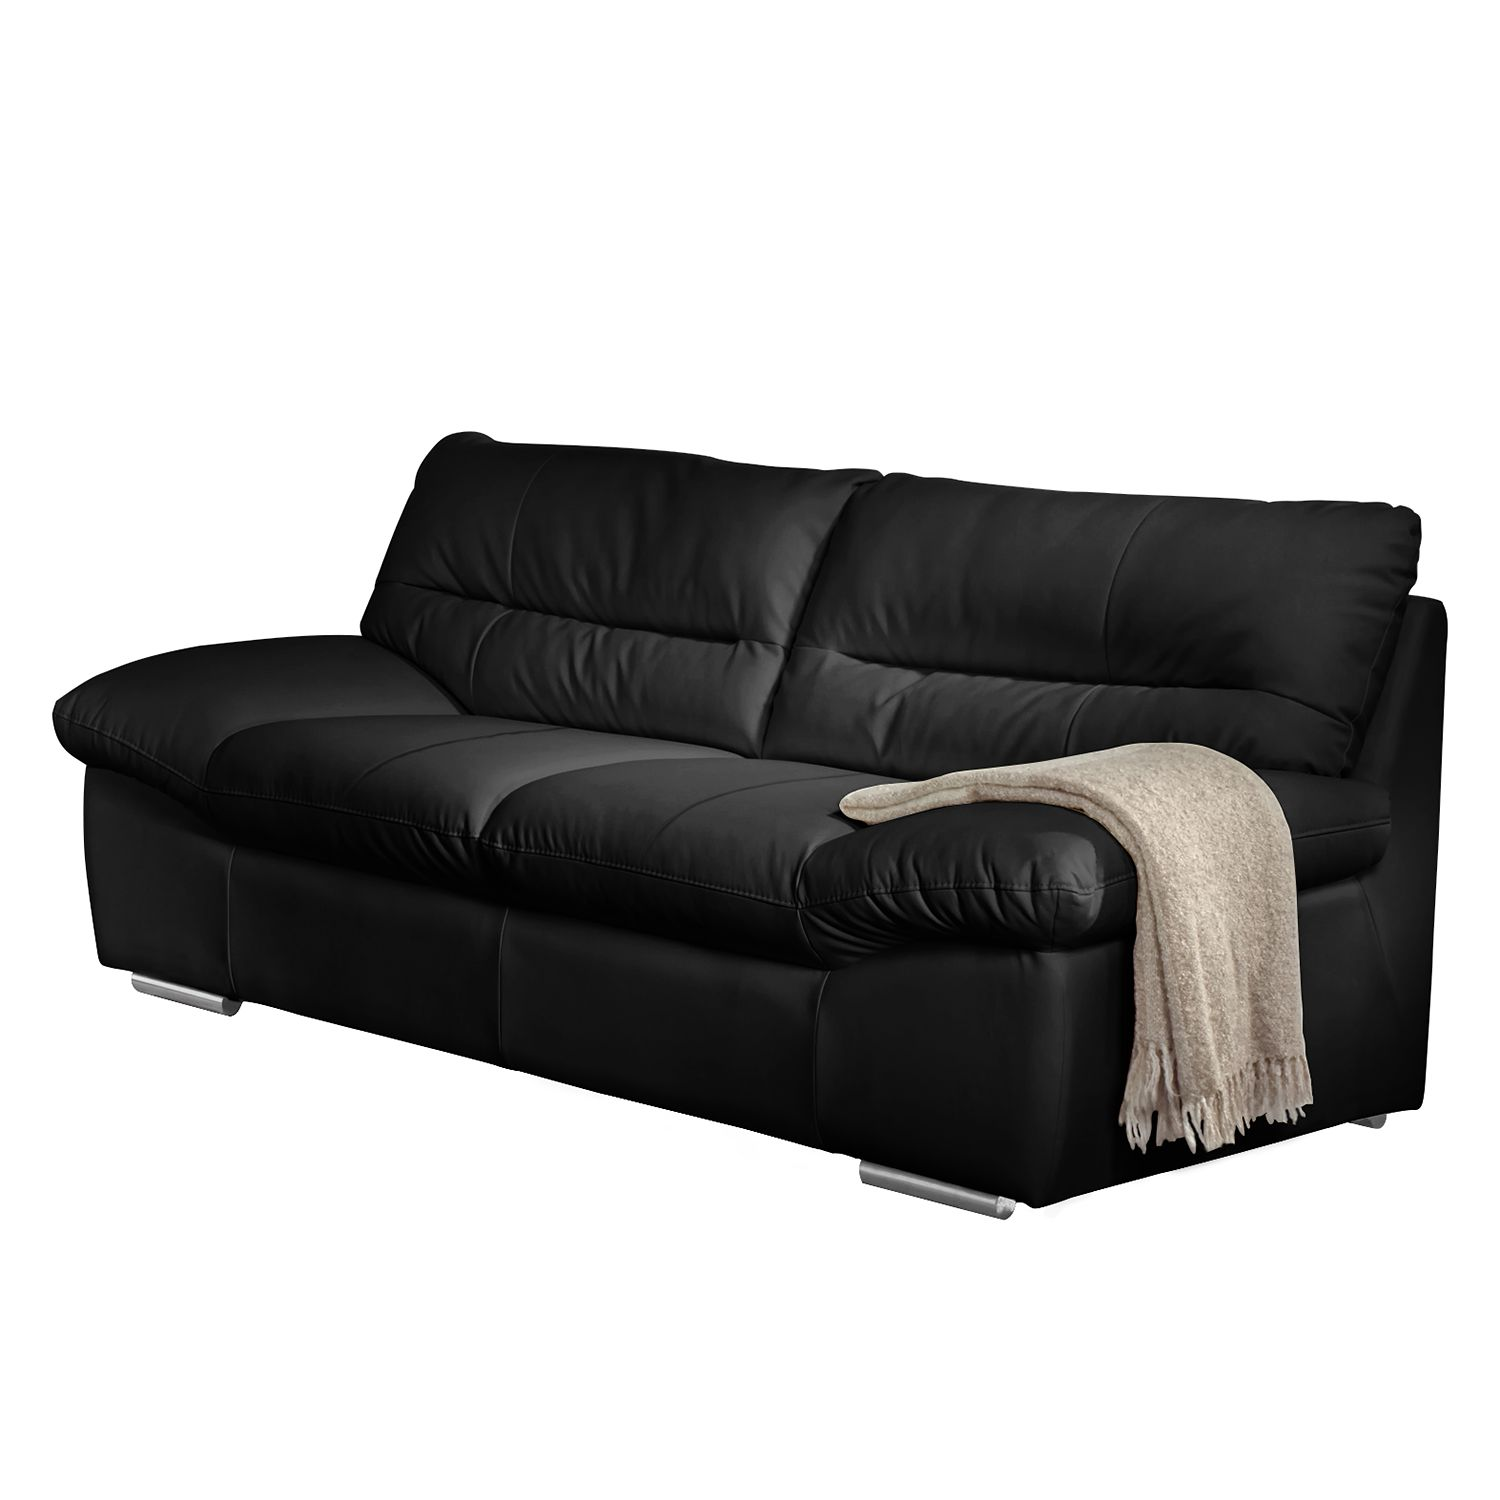 sofa doug 2 sitzer echtleder schwarz cotta. Black Bedroom Furniture Sets. Home Design Ideas